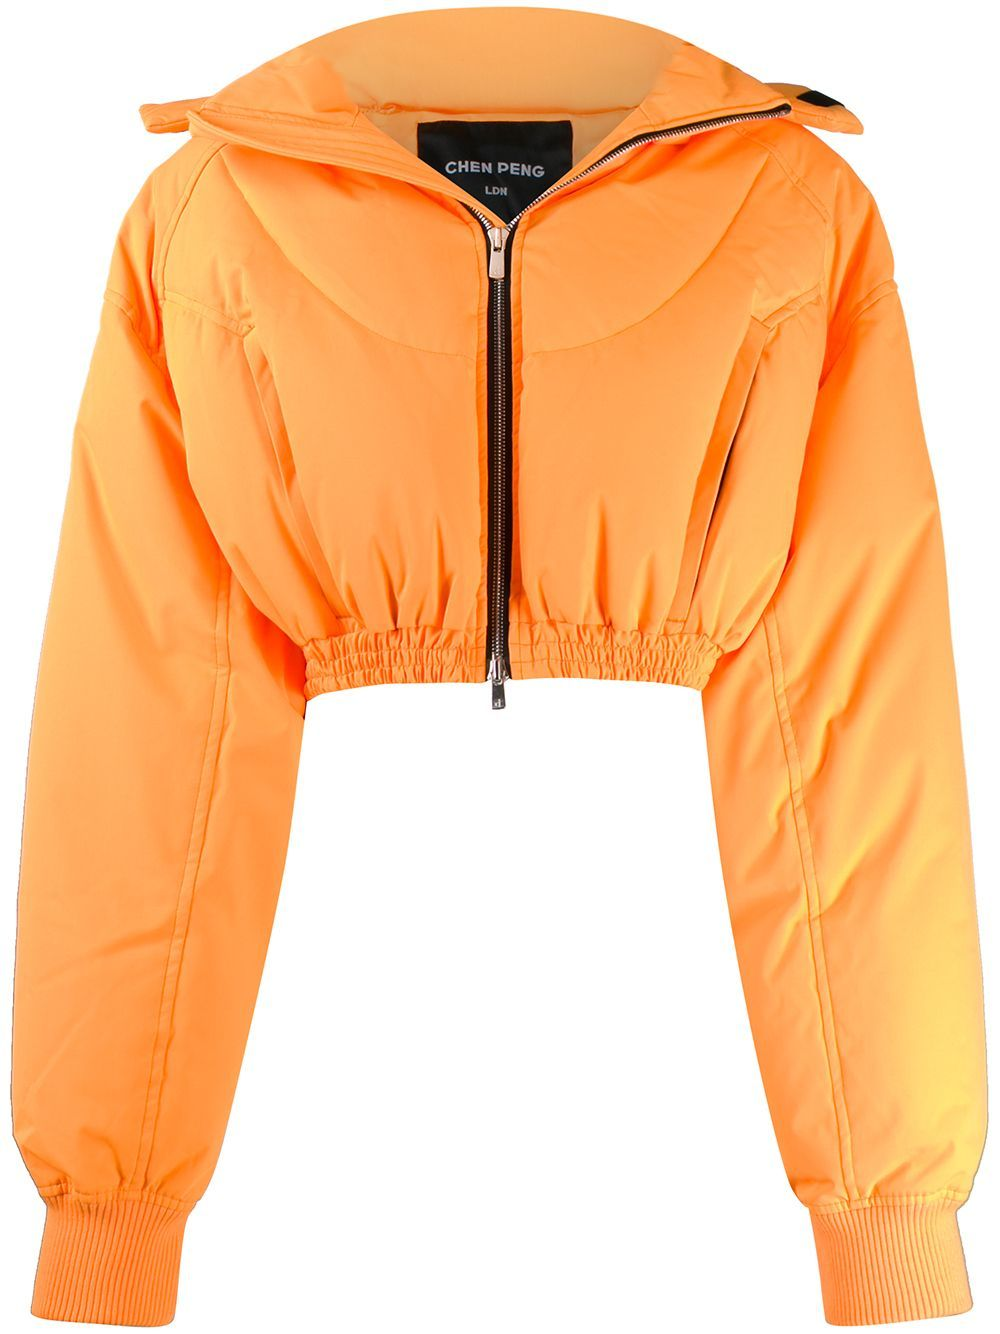 Chen Peng Cropped Puffer Jacket Farfetch Cropped Puffer Jacket Hipster Outfits Aesthetic Clothes [ 1334 x 1000 Pixel ]